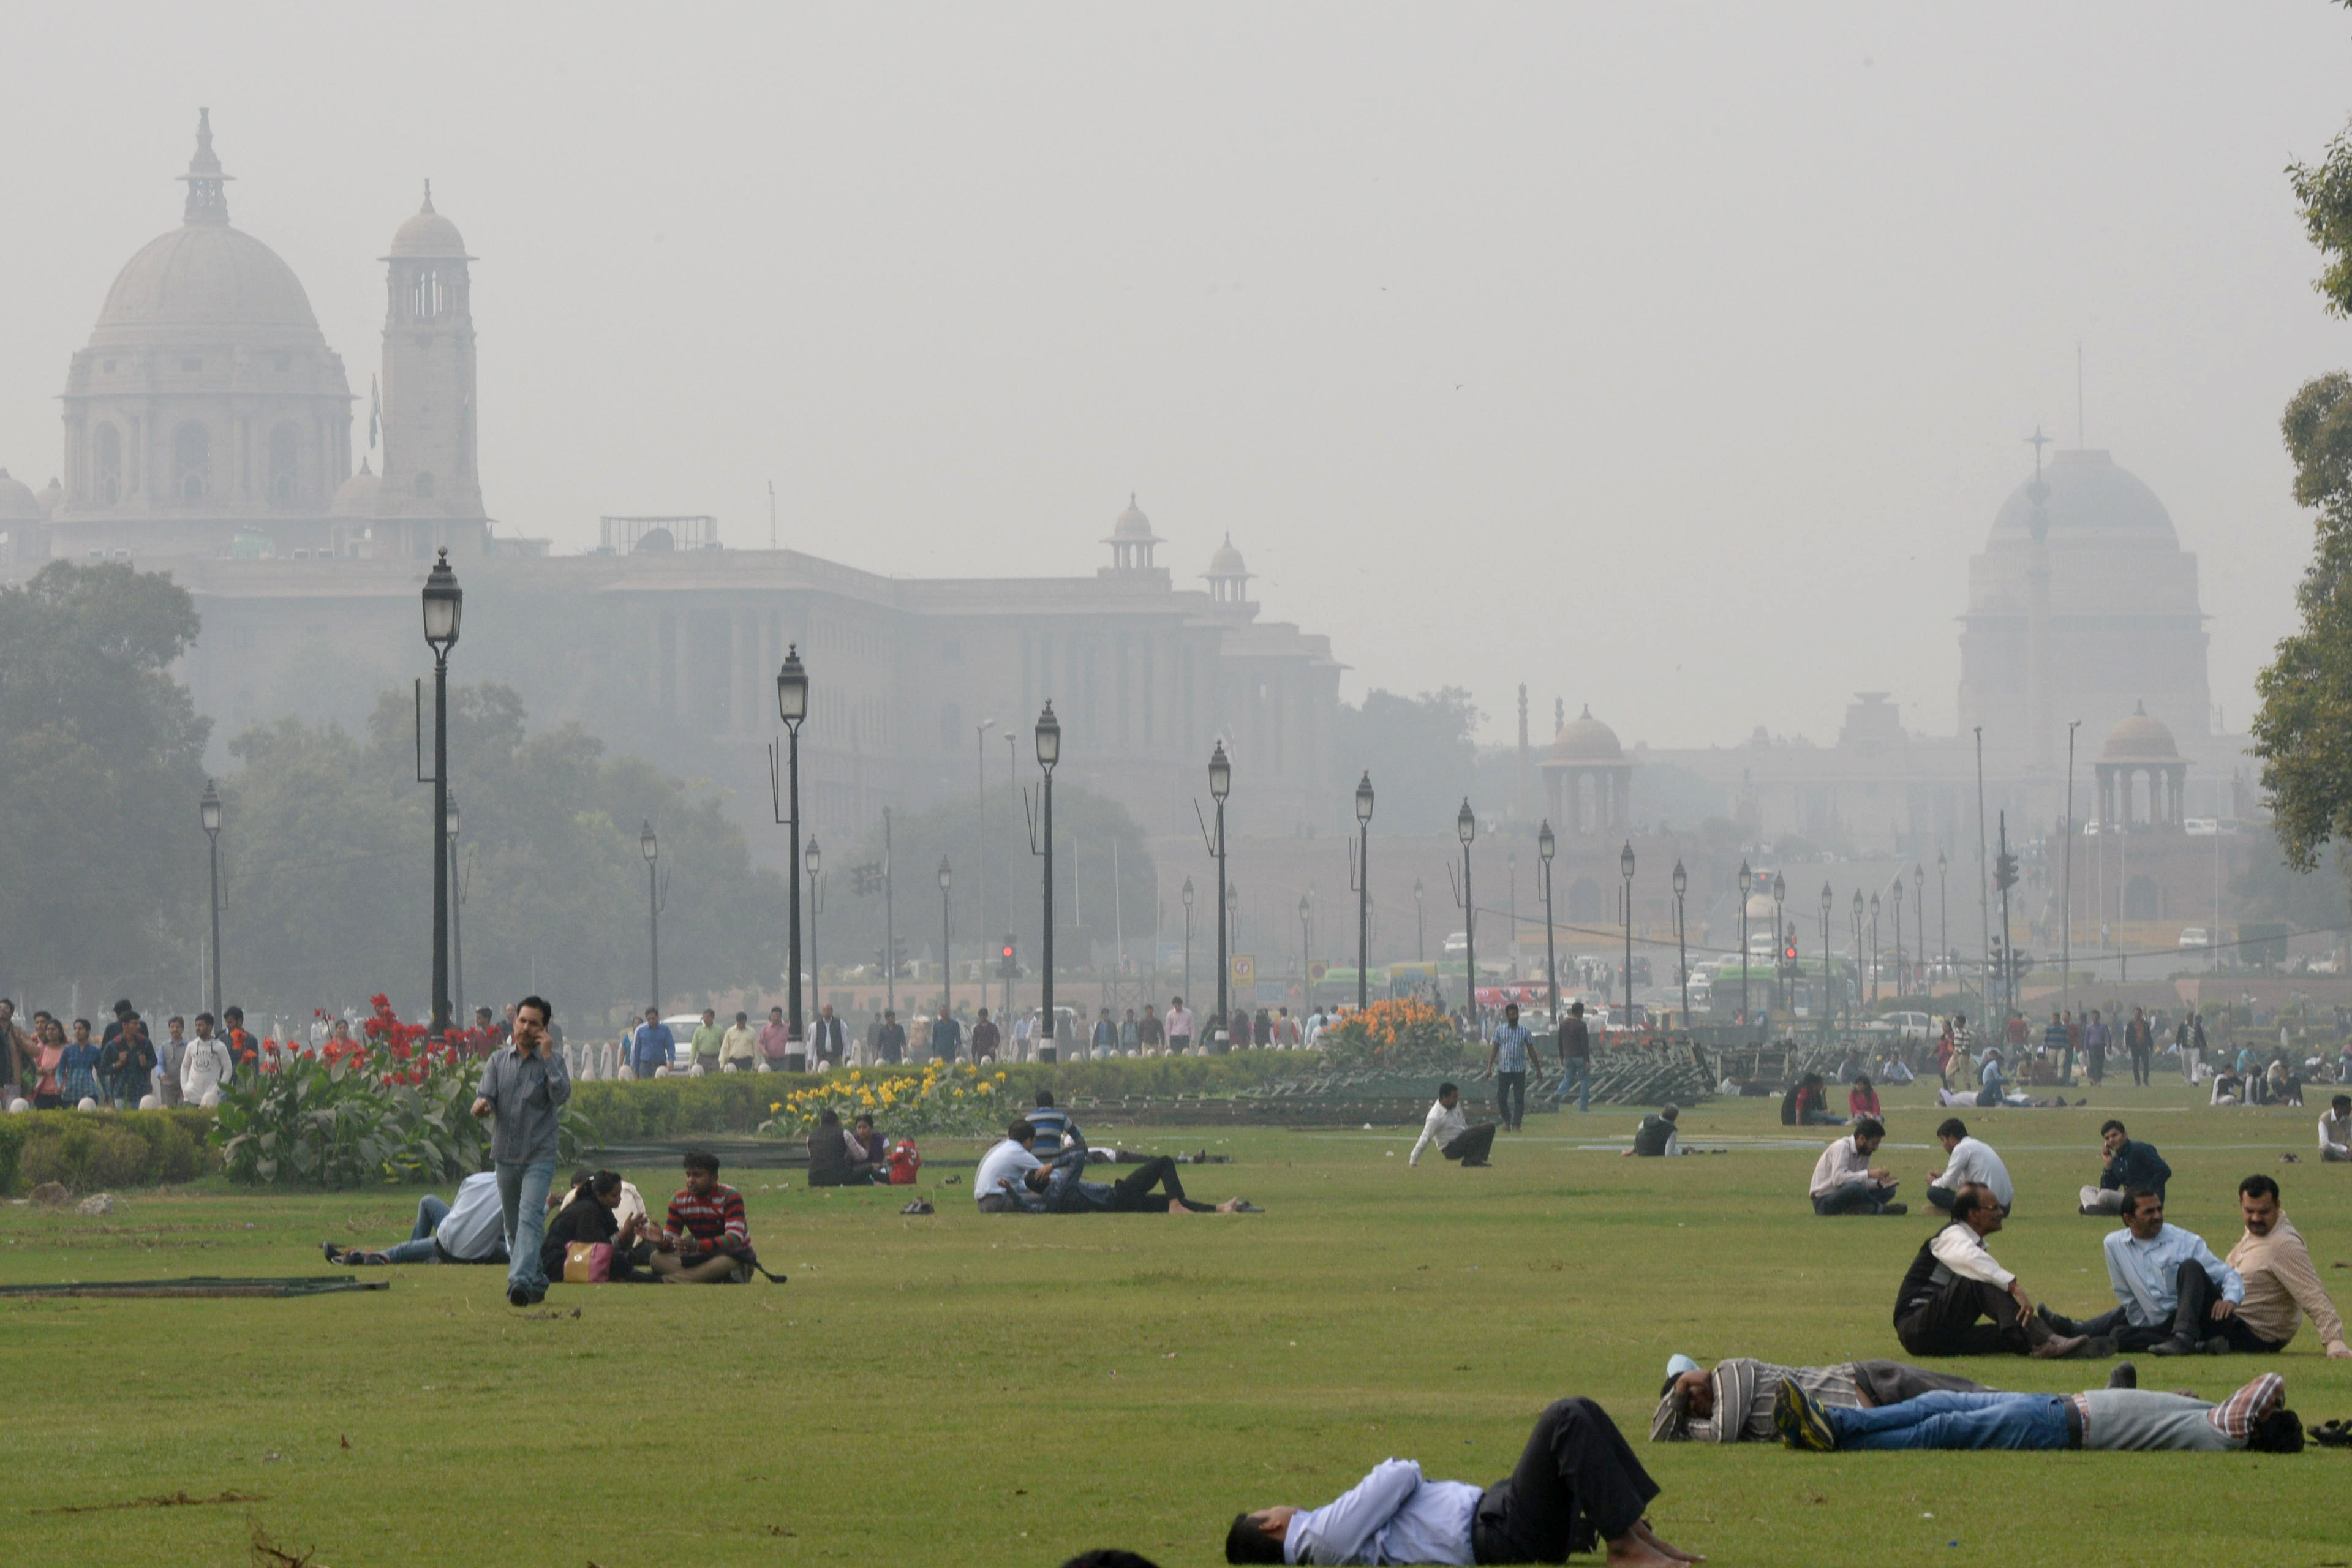 Indian people relax on the lawns near smog enveloped government offices on Rajpath in New Delhi on December 2, 2015.